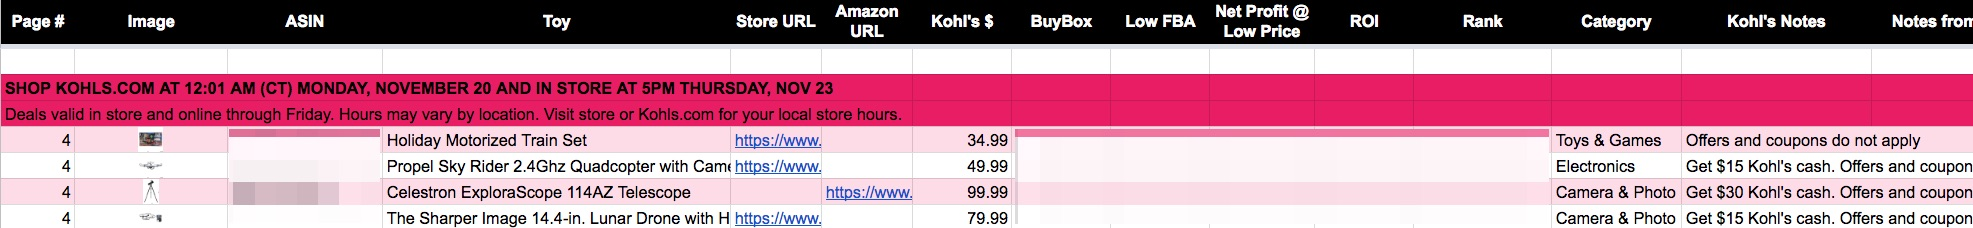 Kohls Ad Example In Spreadsheet Format For Amazon FBA Sellers